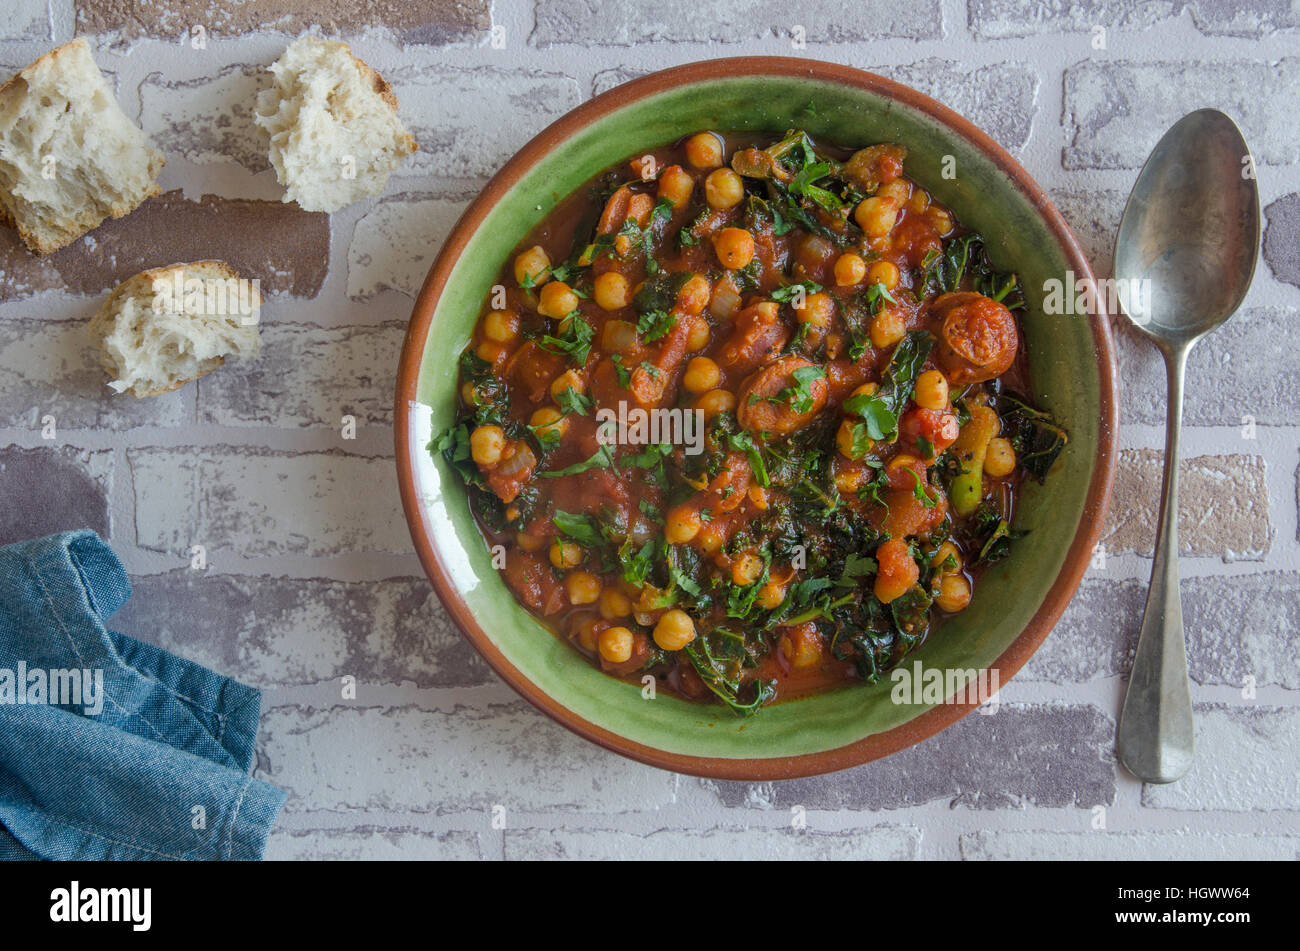 Chickpea, chorizo and kale stew with rustic bread - Stock Image